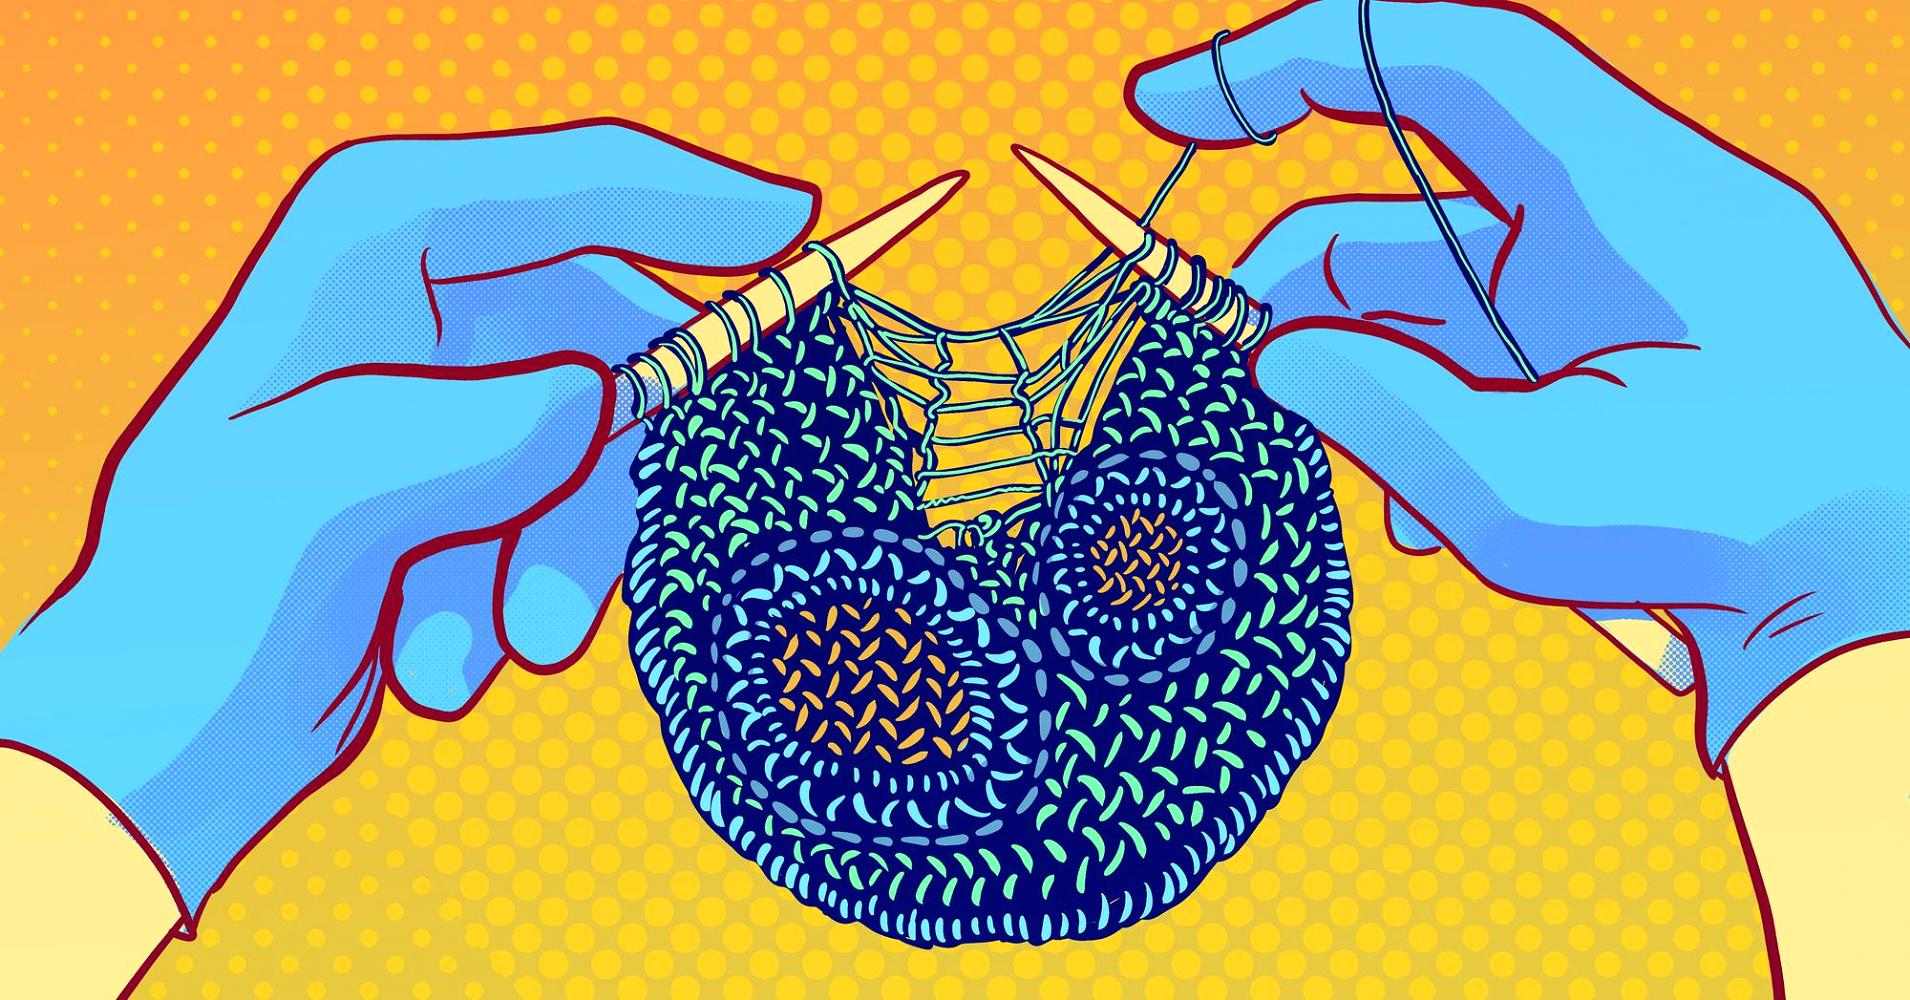 Crafting organisms | Illustration by George Kavallines for CNBC